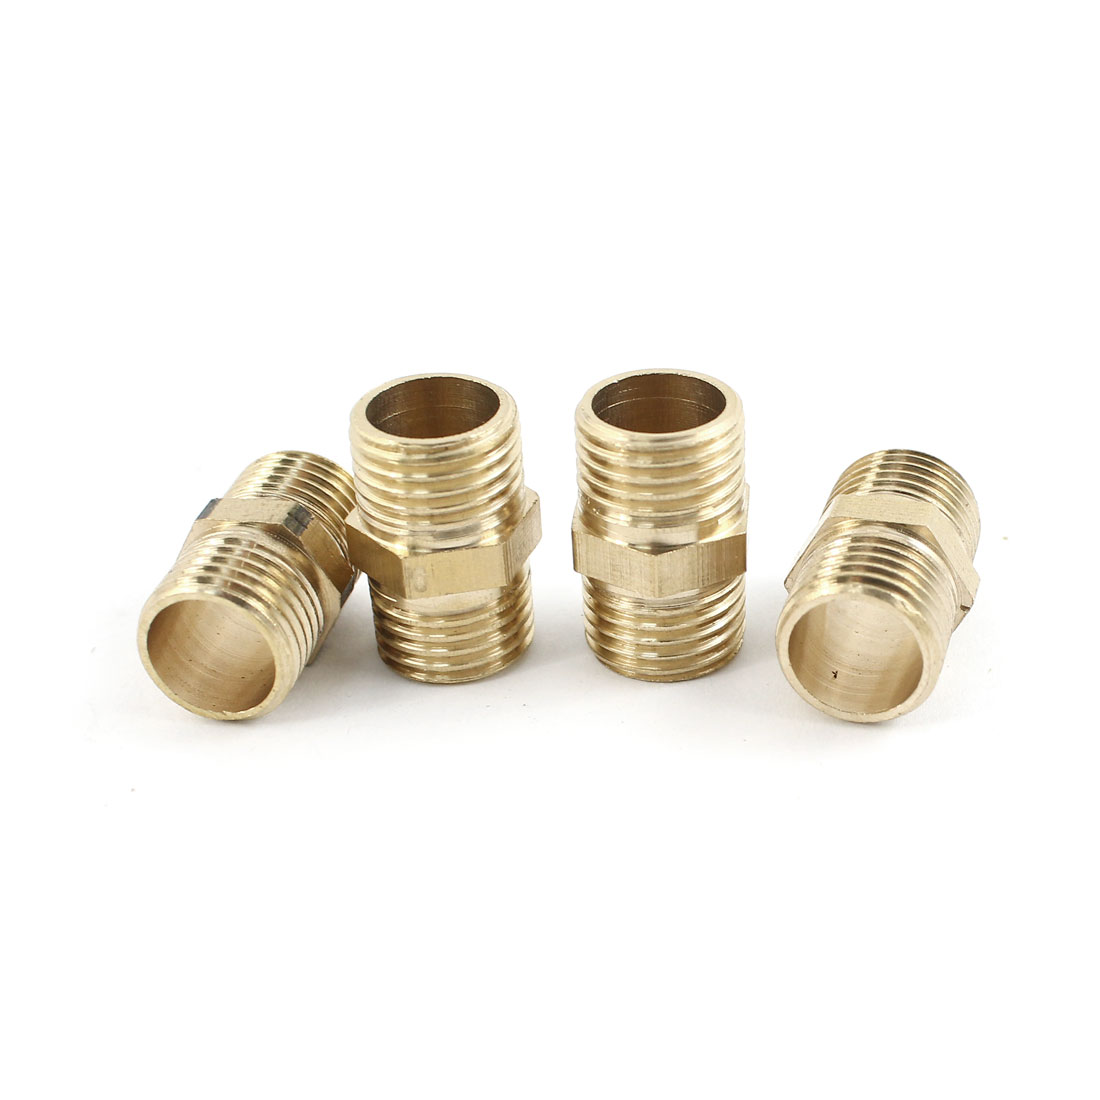 4Pcs 1/4PT to 1/4PT Male Threaded Reducer Pipe Hex Nipple Coupler Straight Connector for Water Heating Fitting